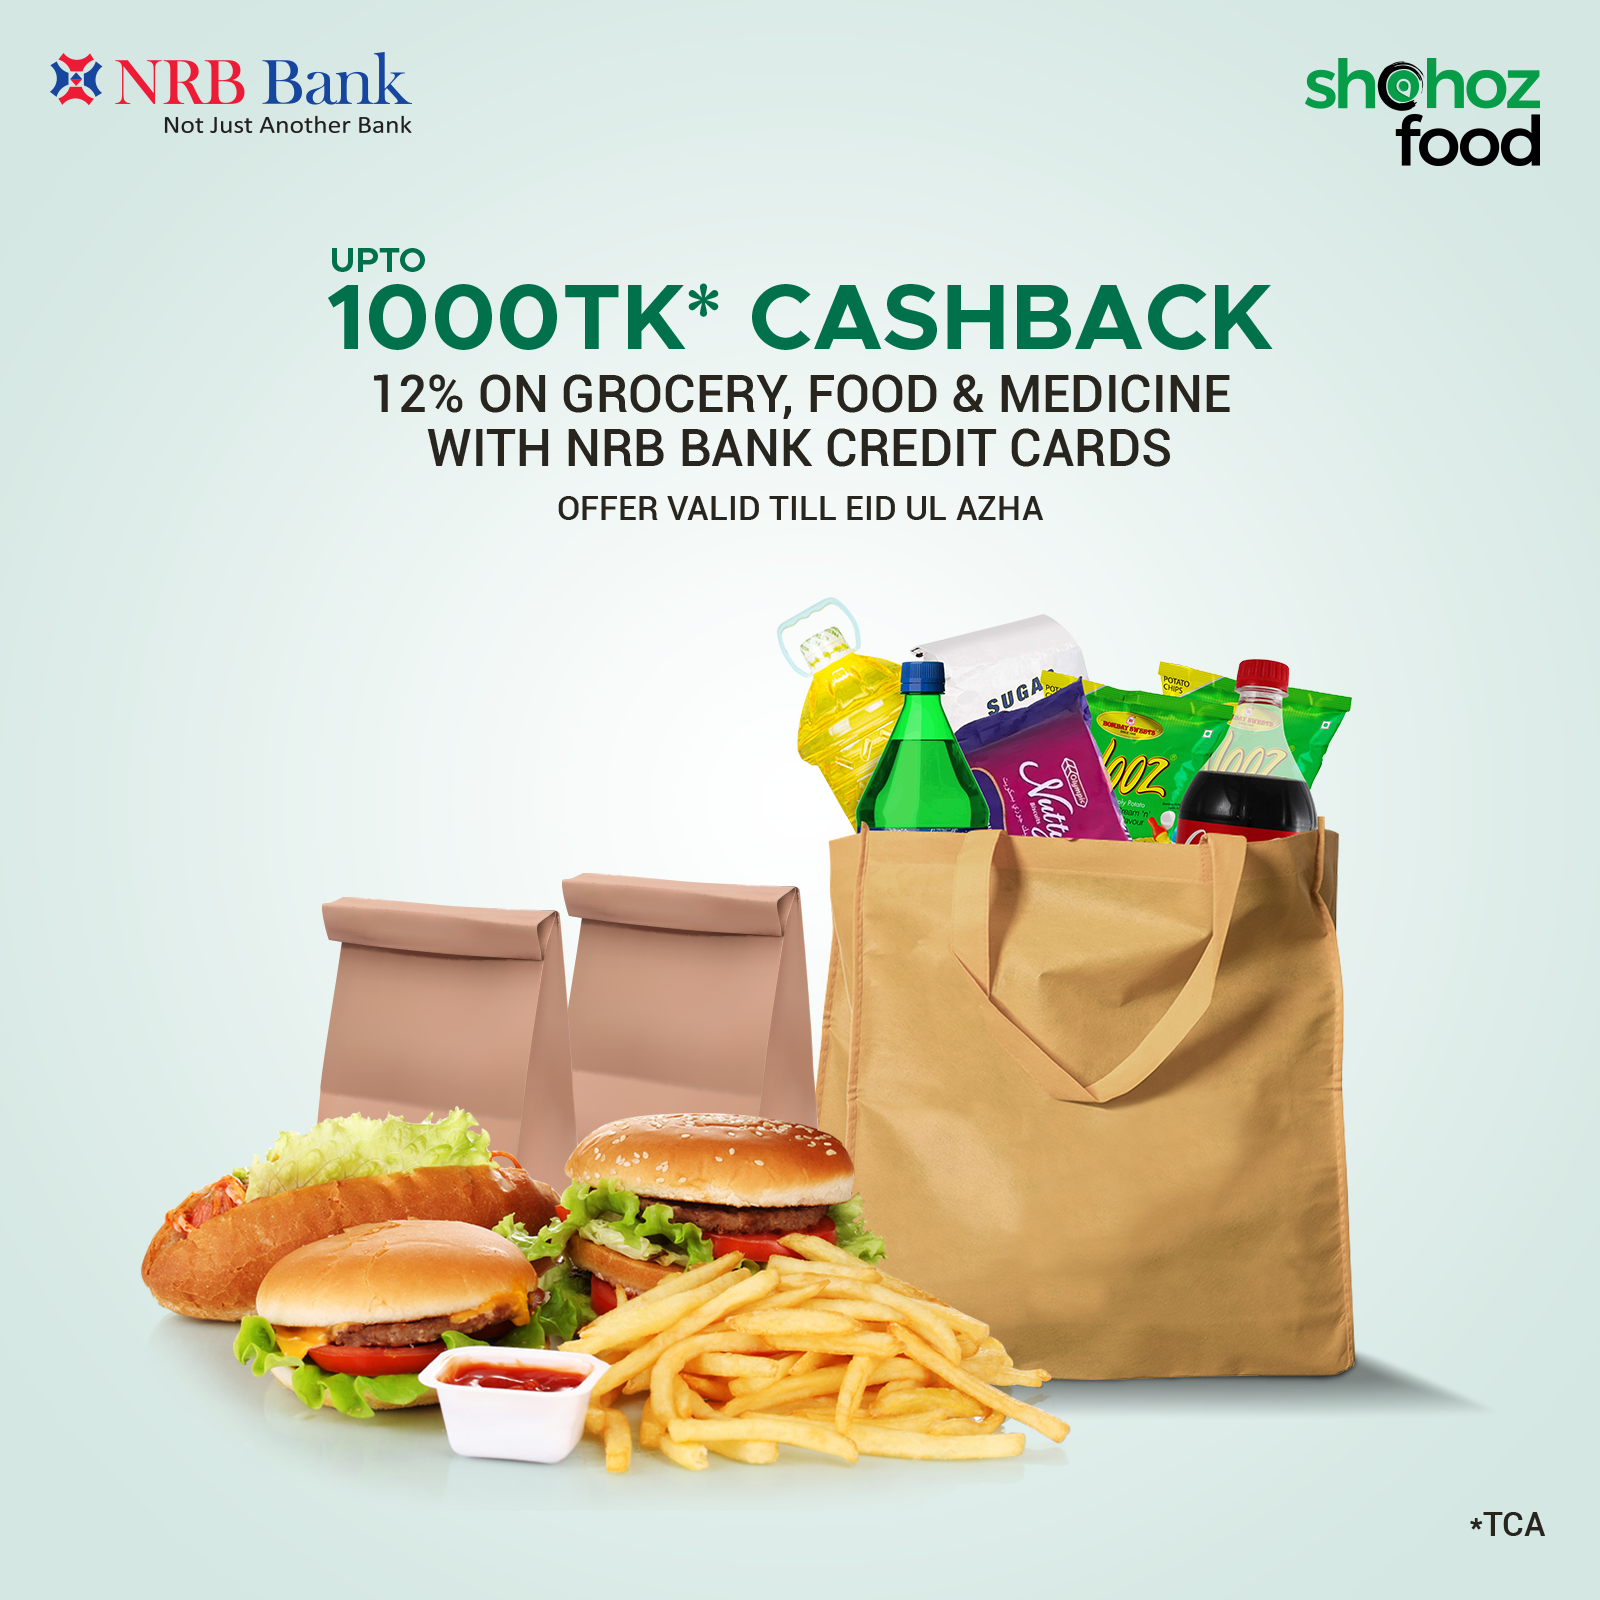 12%* CASHBACK UP TO TK 1000 ON NRB BANK CREDIT CARDS ON SHOHOZ FOOD